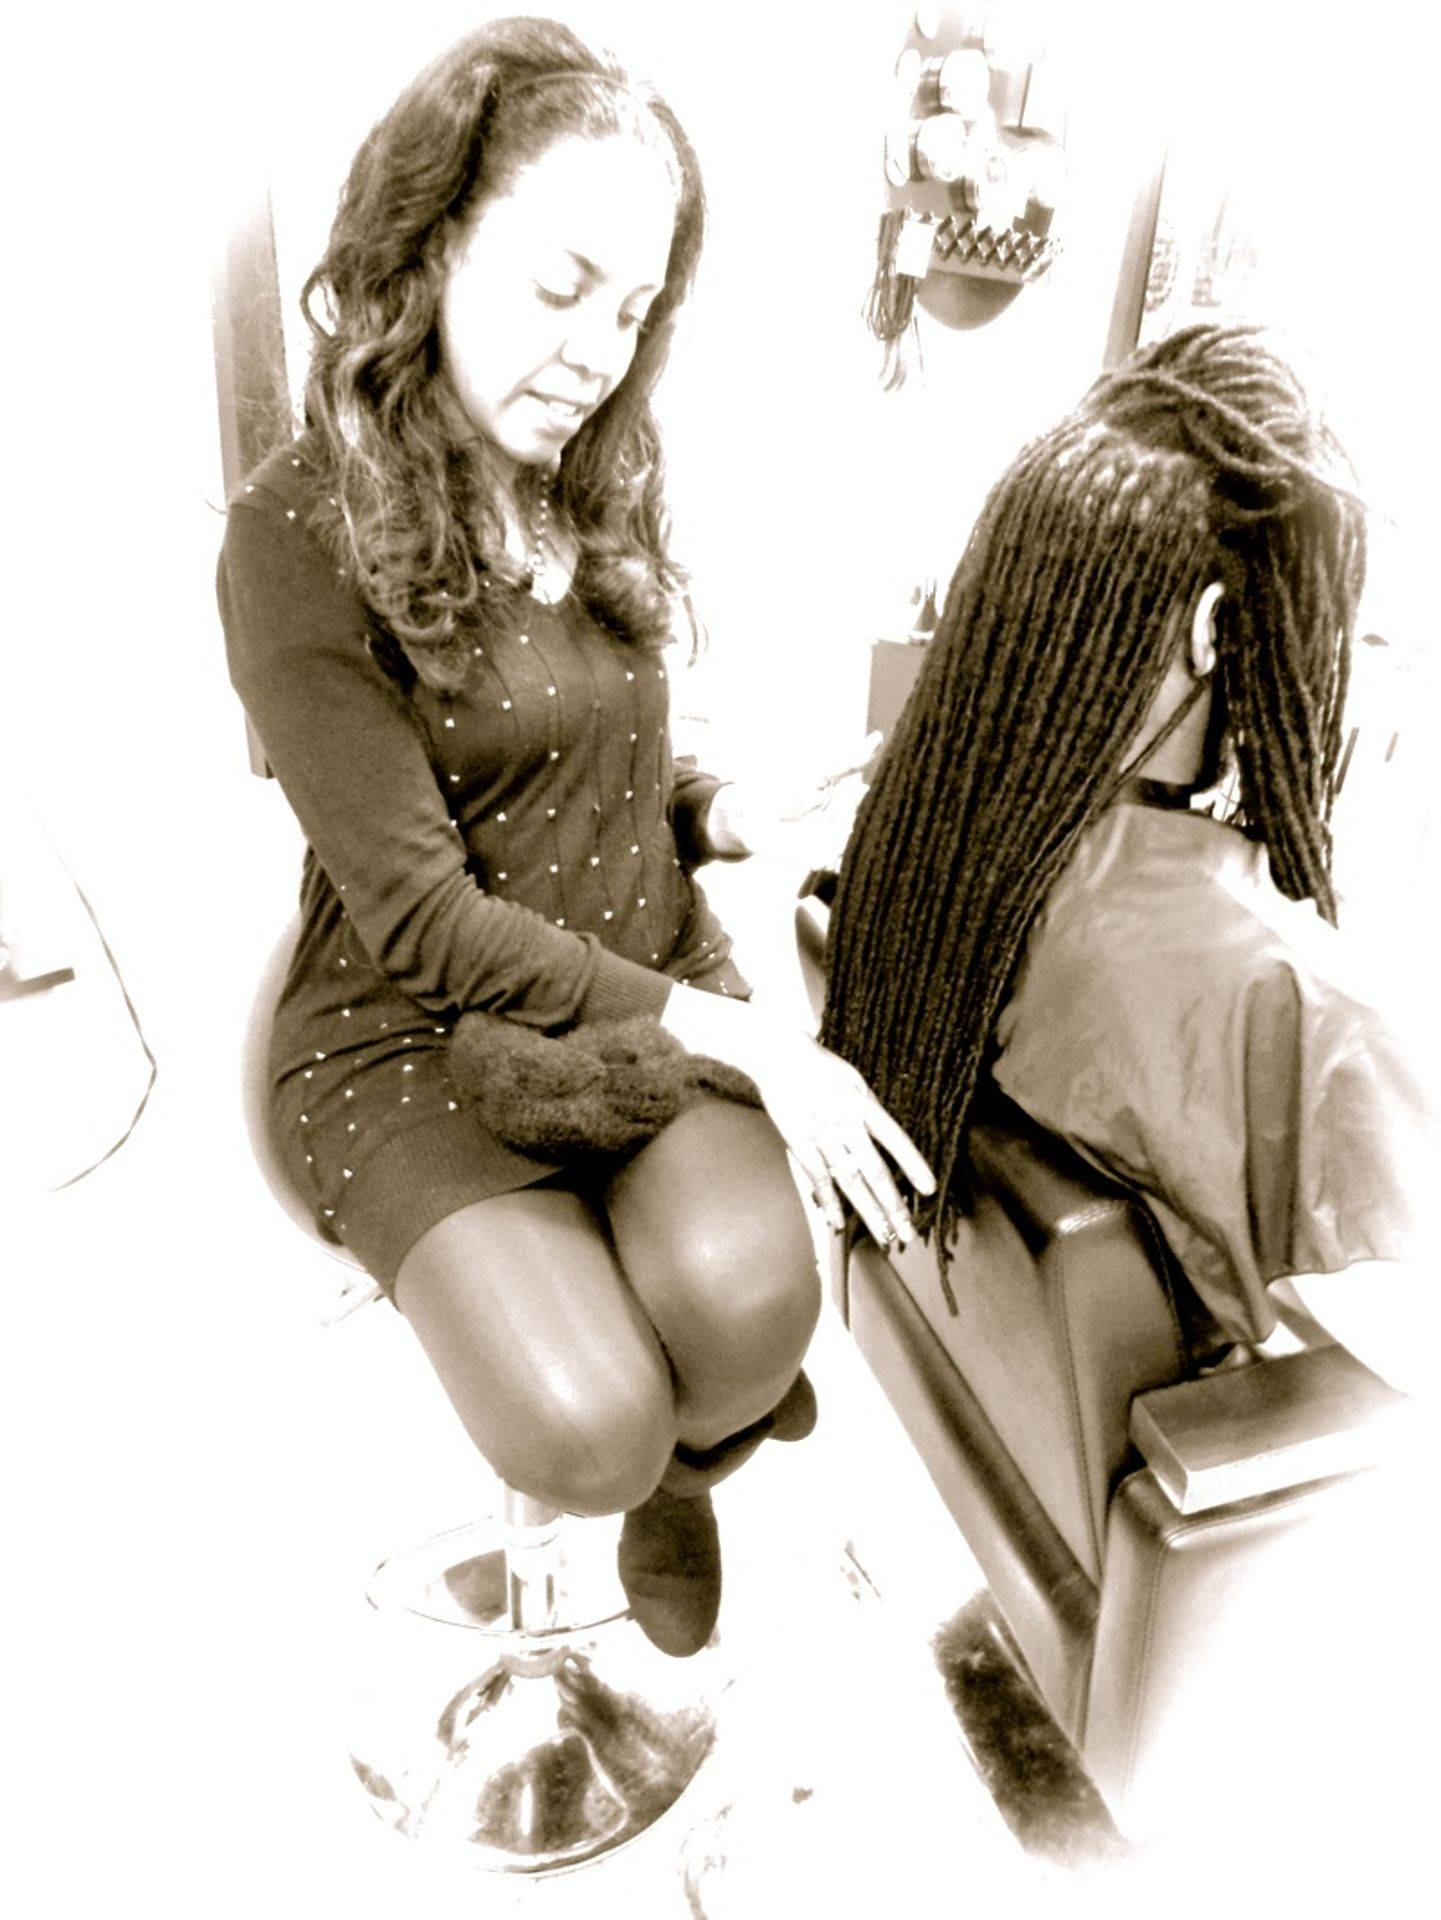 Braids by Bee reinforces natural dreads to stay healthy a protective style for men with long dreads that don't want there dreads to be fuzzy or become thin from regular wear and tear.